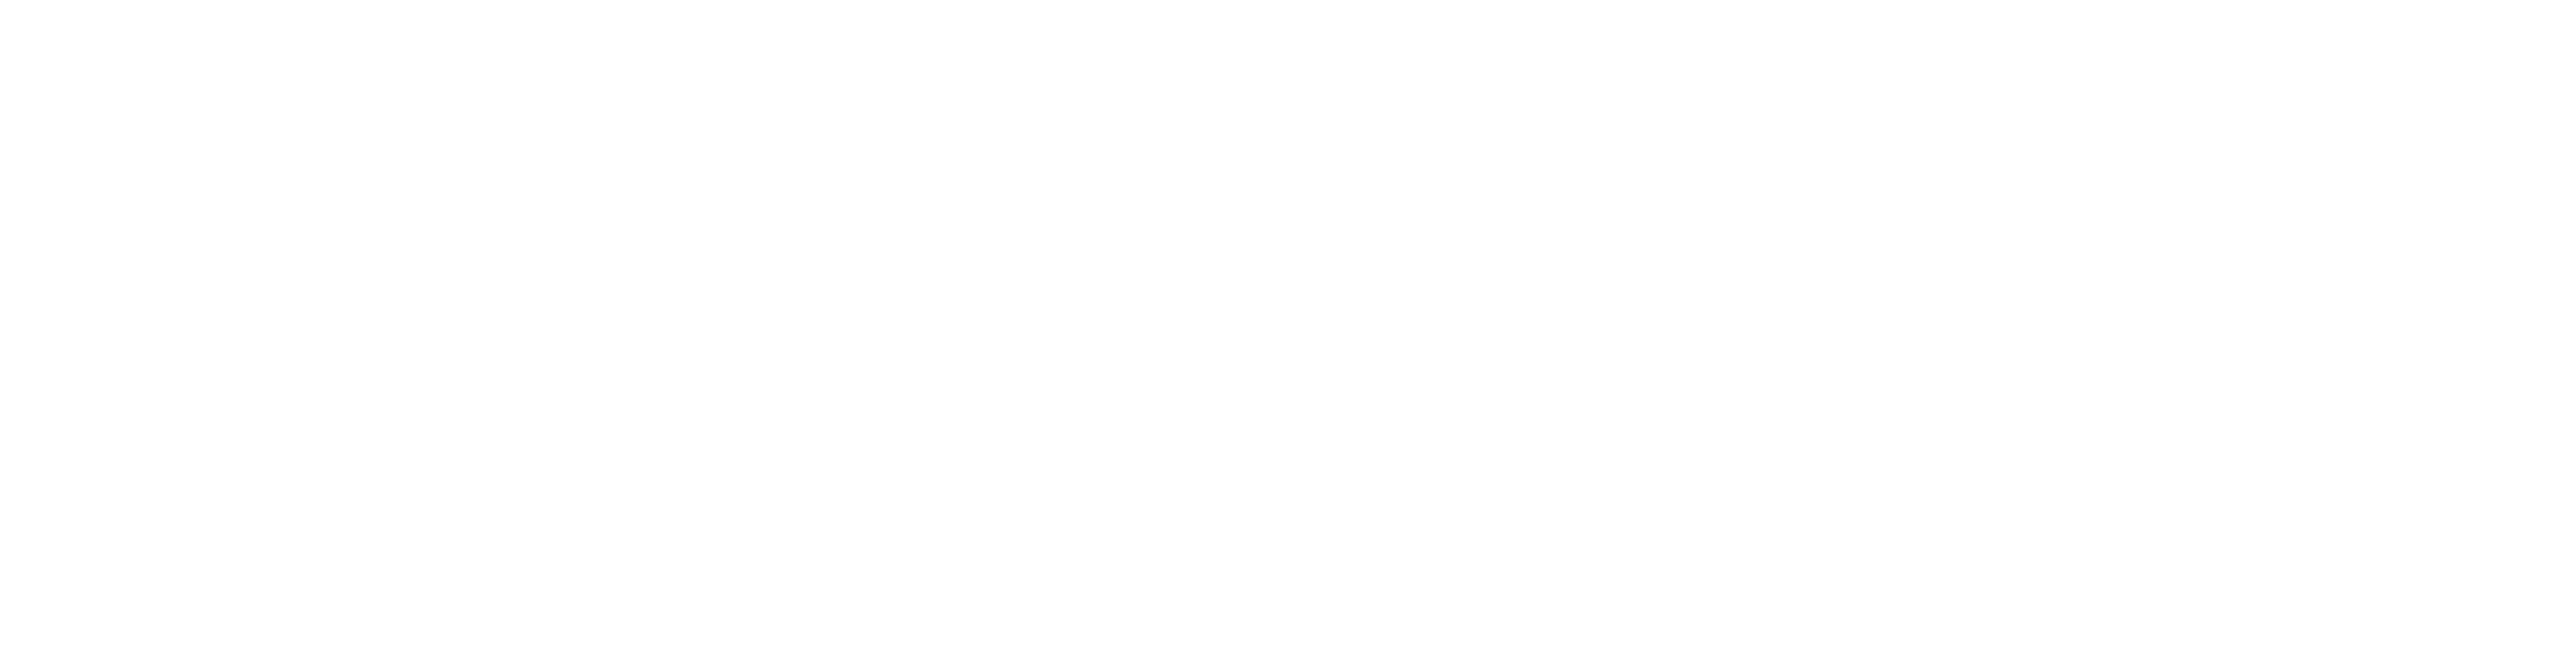 Chalkboard ribbon png. Banner theveliger